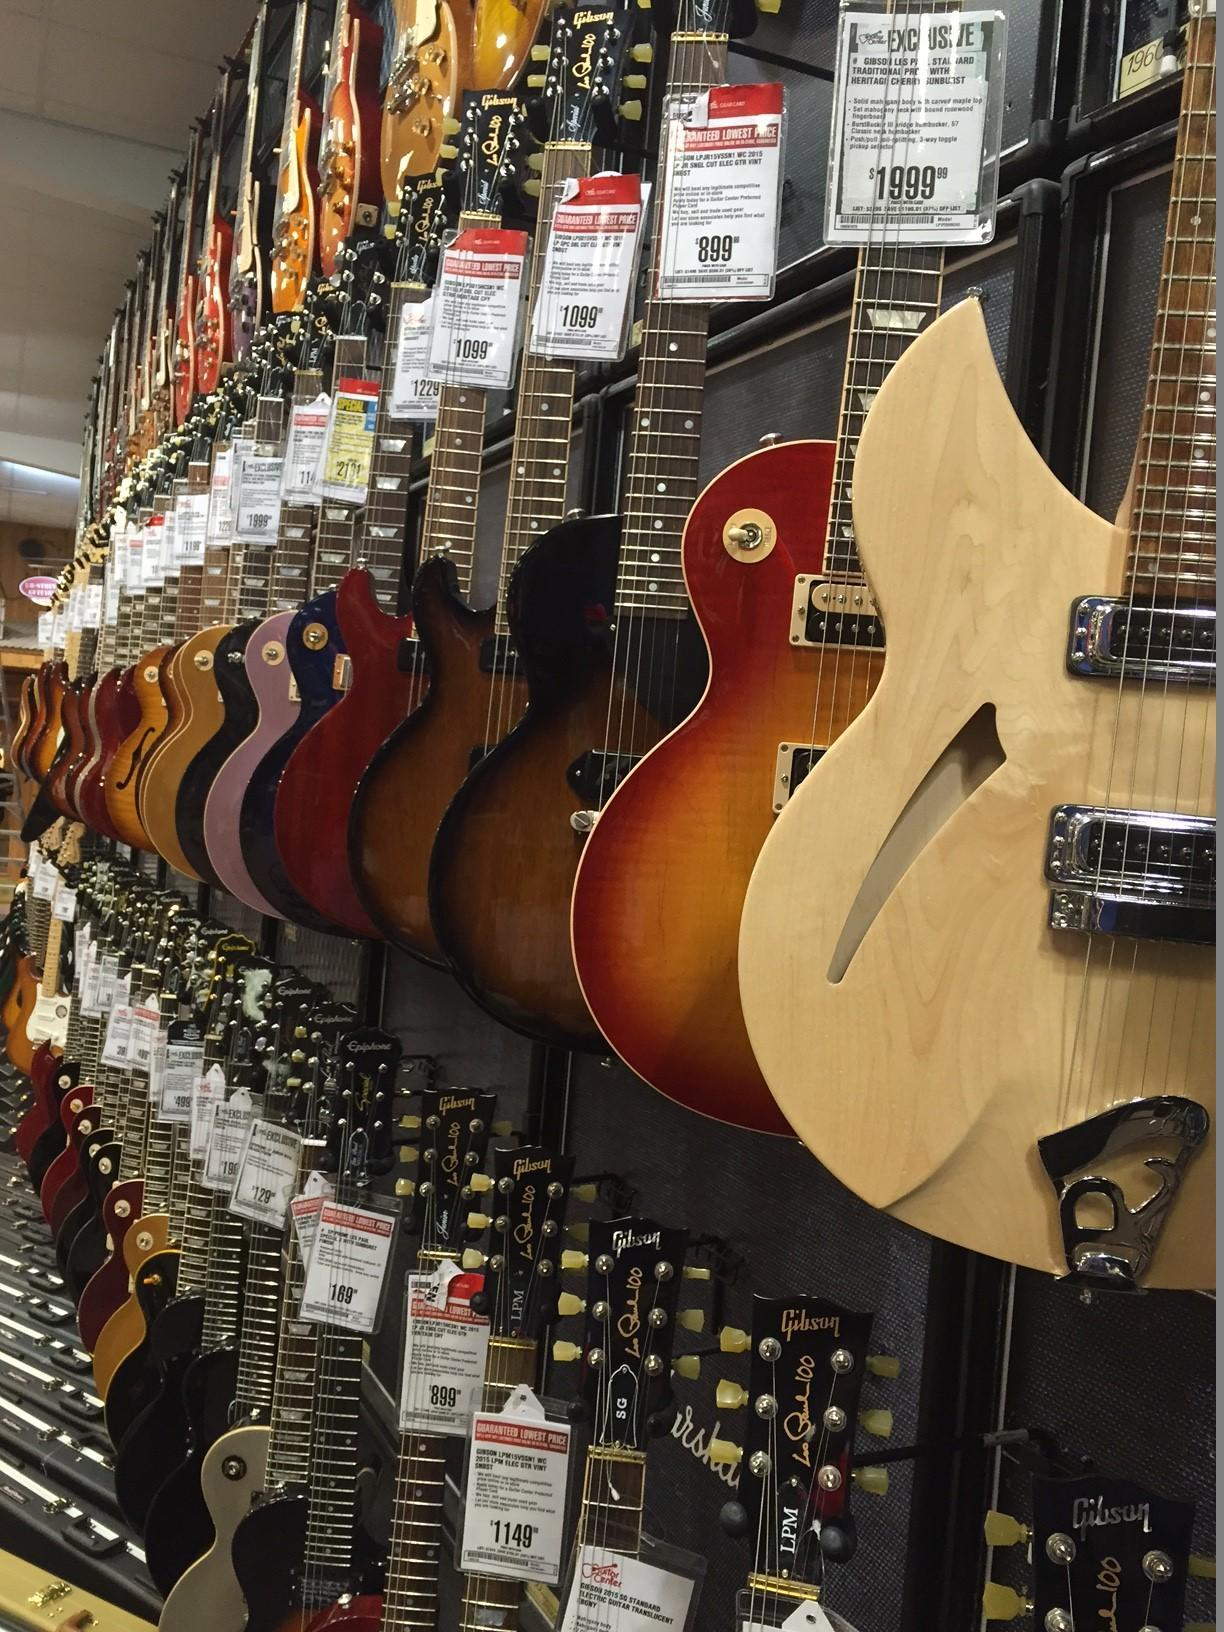 guitar center coupons santa clara ca near me 8coupons. Black Bedroom Furniture Sets. Home Design Ideas